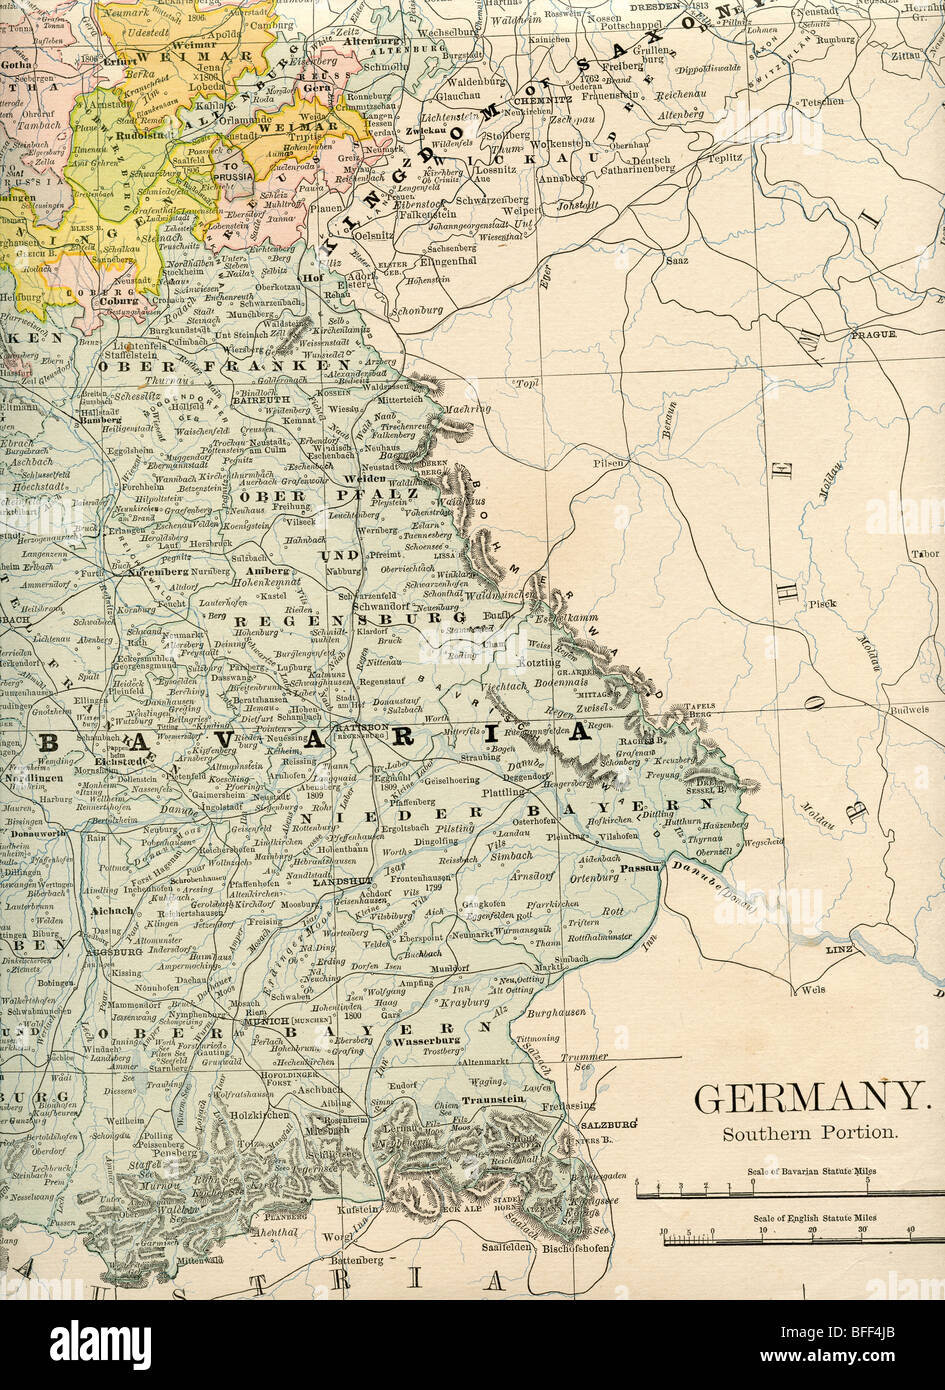 original old map of bavaria and southern germany from 1884 geography textbook